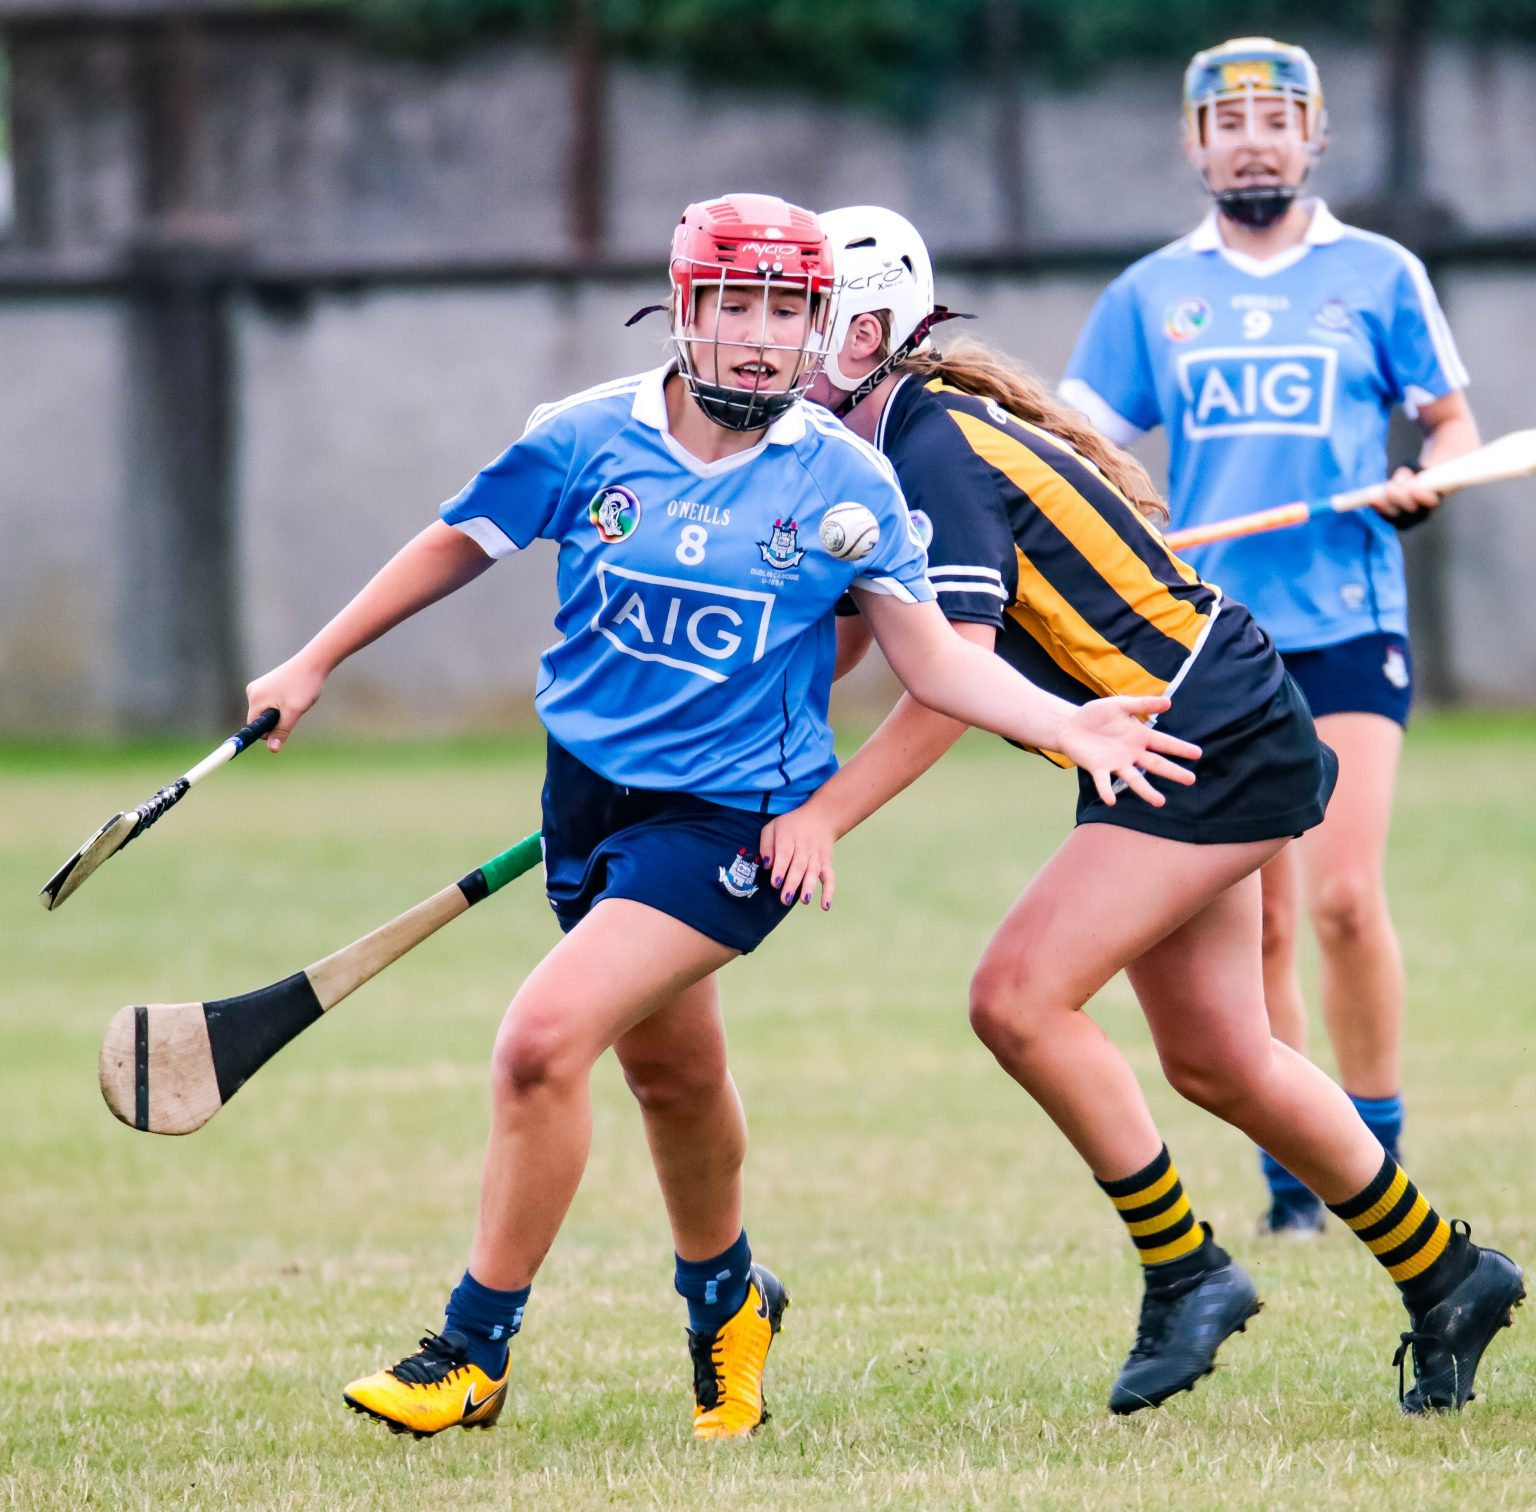 Dublin Camogie Player in a sky blue jersey, navy skort and red helmet hand passing the ball Dublin face Galway in the championship quarter final